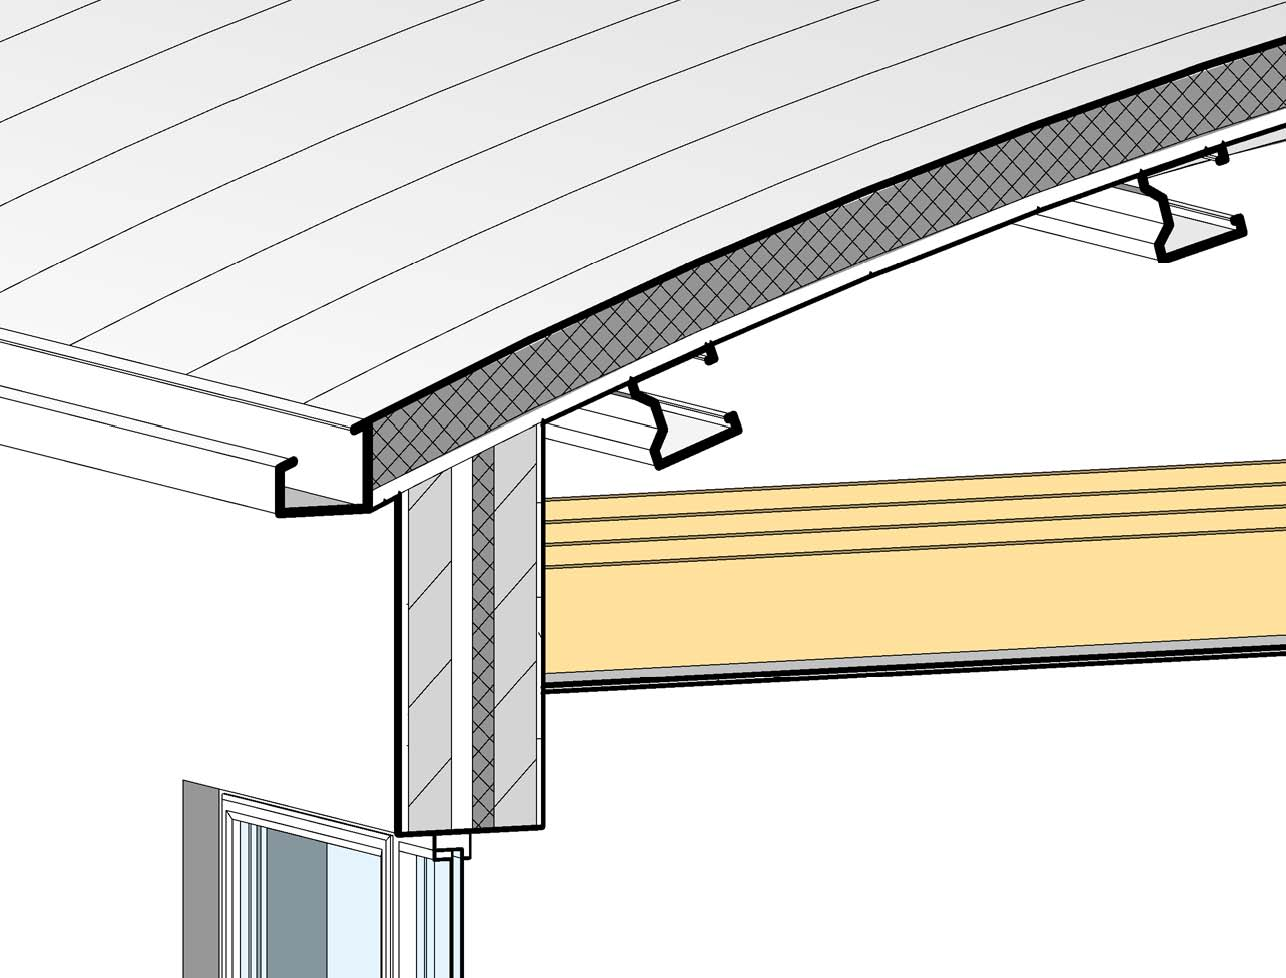 Revit Detail: 04.1 - Curved Roof Detail - Analysis